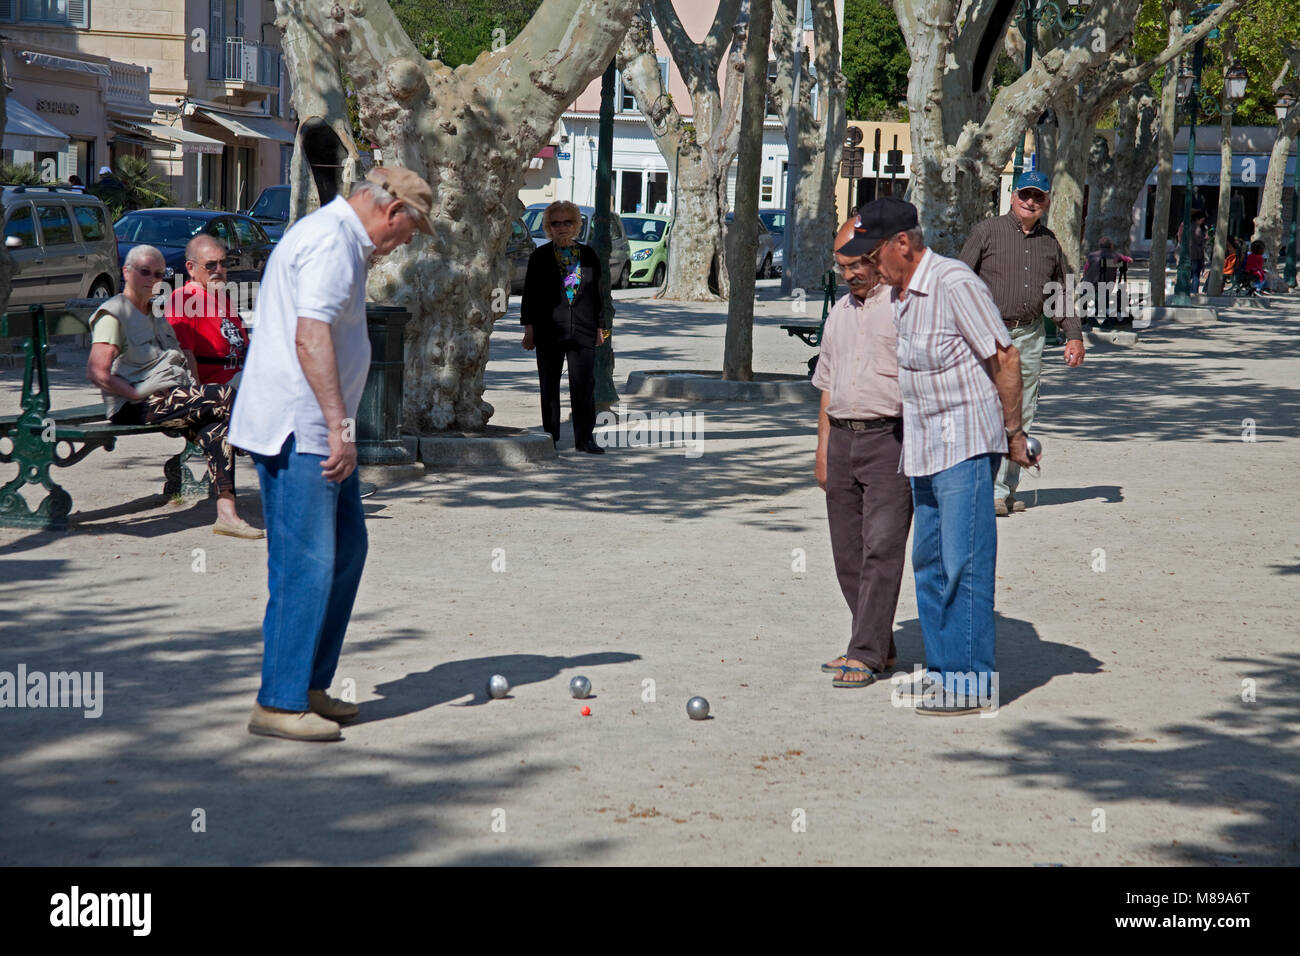 Local men playing Boule (Pétanque) at Place des Lices, a popular game, old town of Saint-Tropez, french riviera, - Stock Image